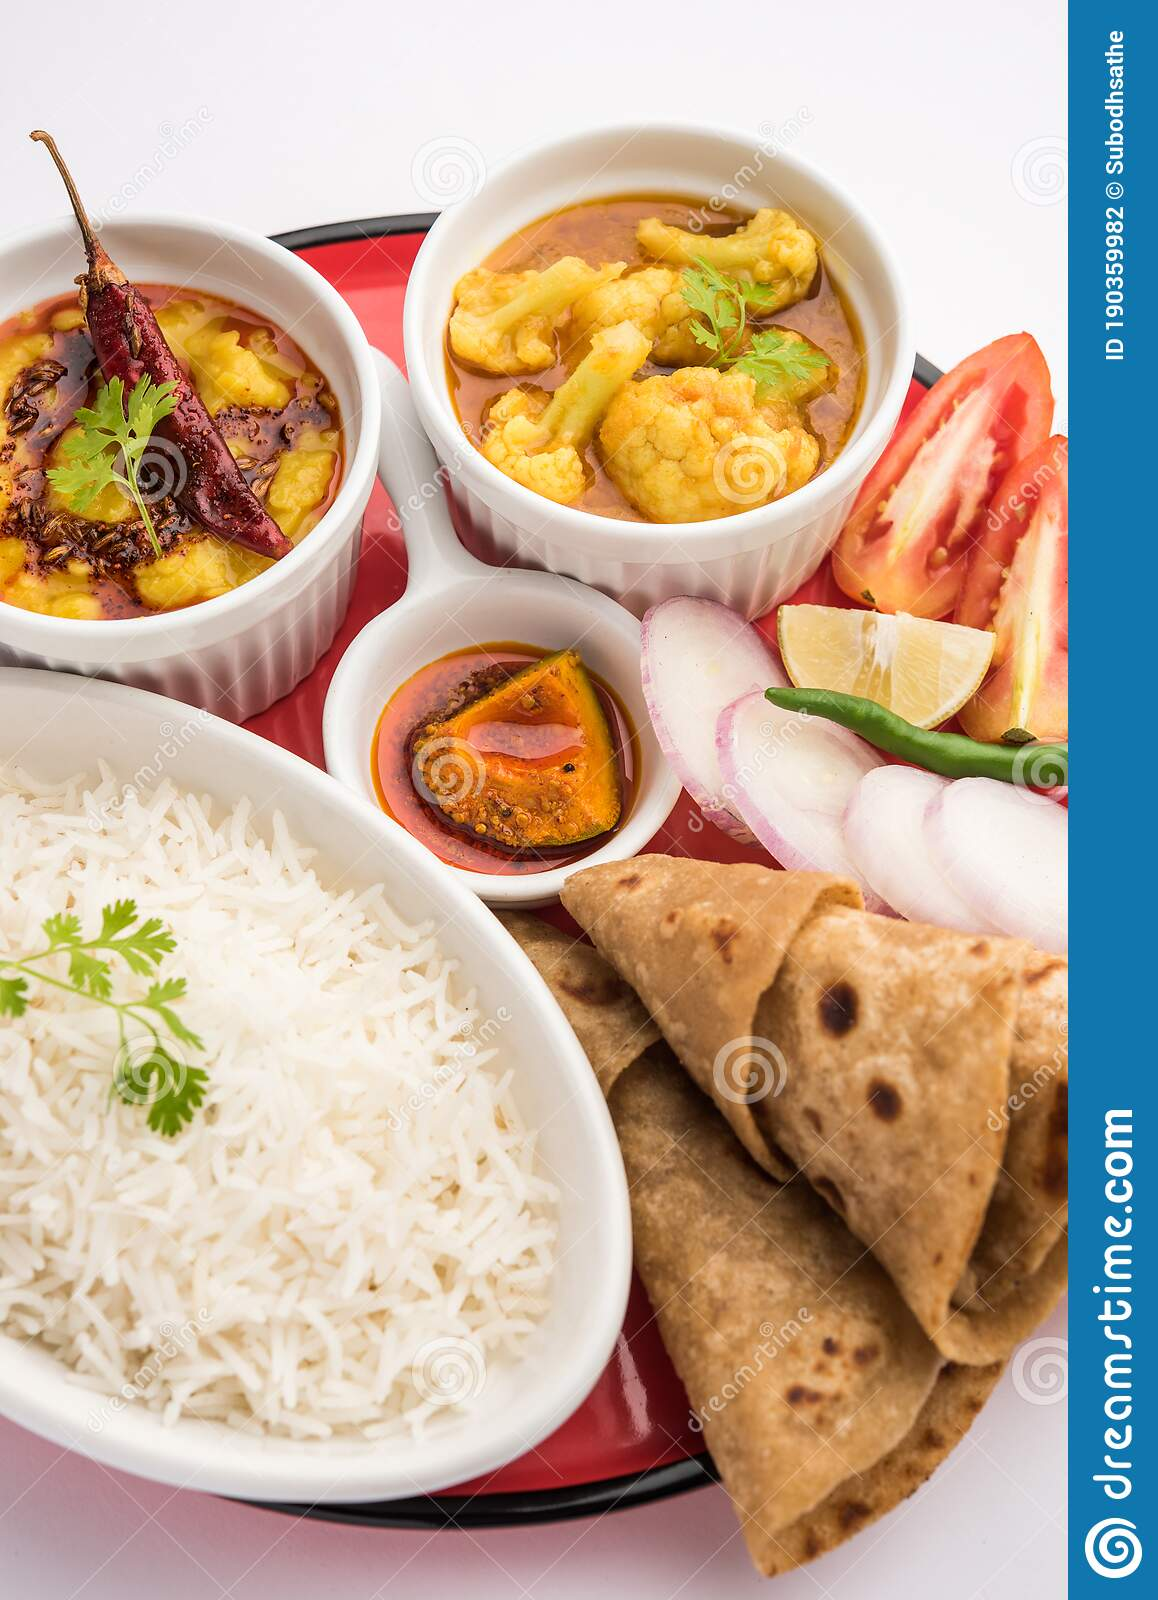 Indian Food Platter Or Thali Contains Vegetarian Recipes A Complete Meal Stock Photo Image Of Maharashtra Cuisine 190359982